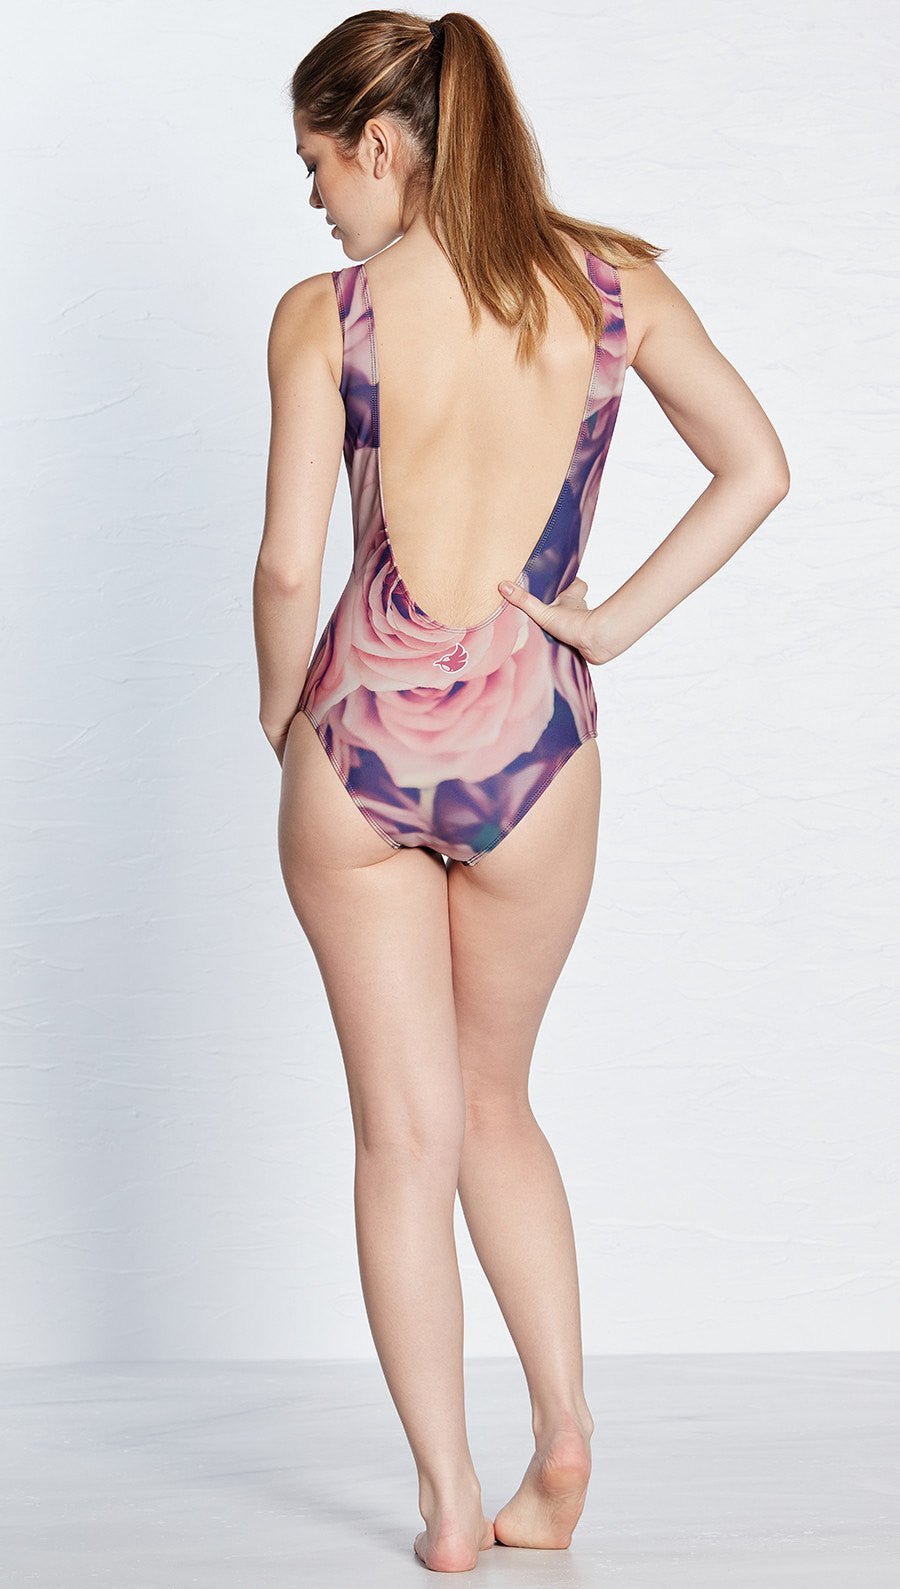 closeup front view of model wearing floral rose themed one piece swimsuit / leotard